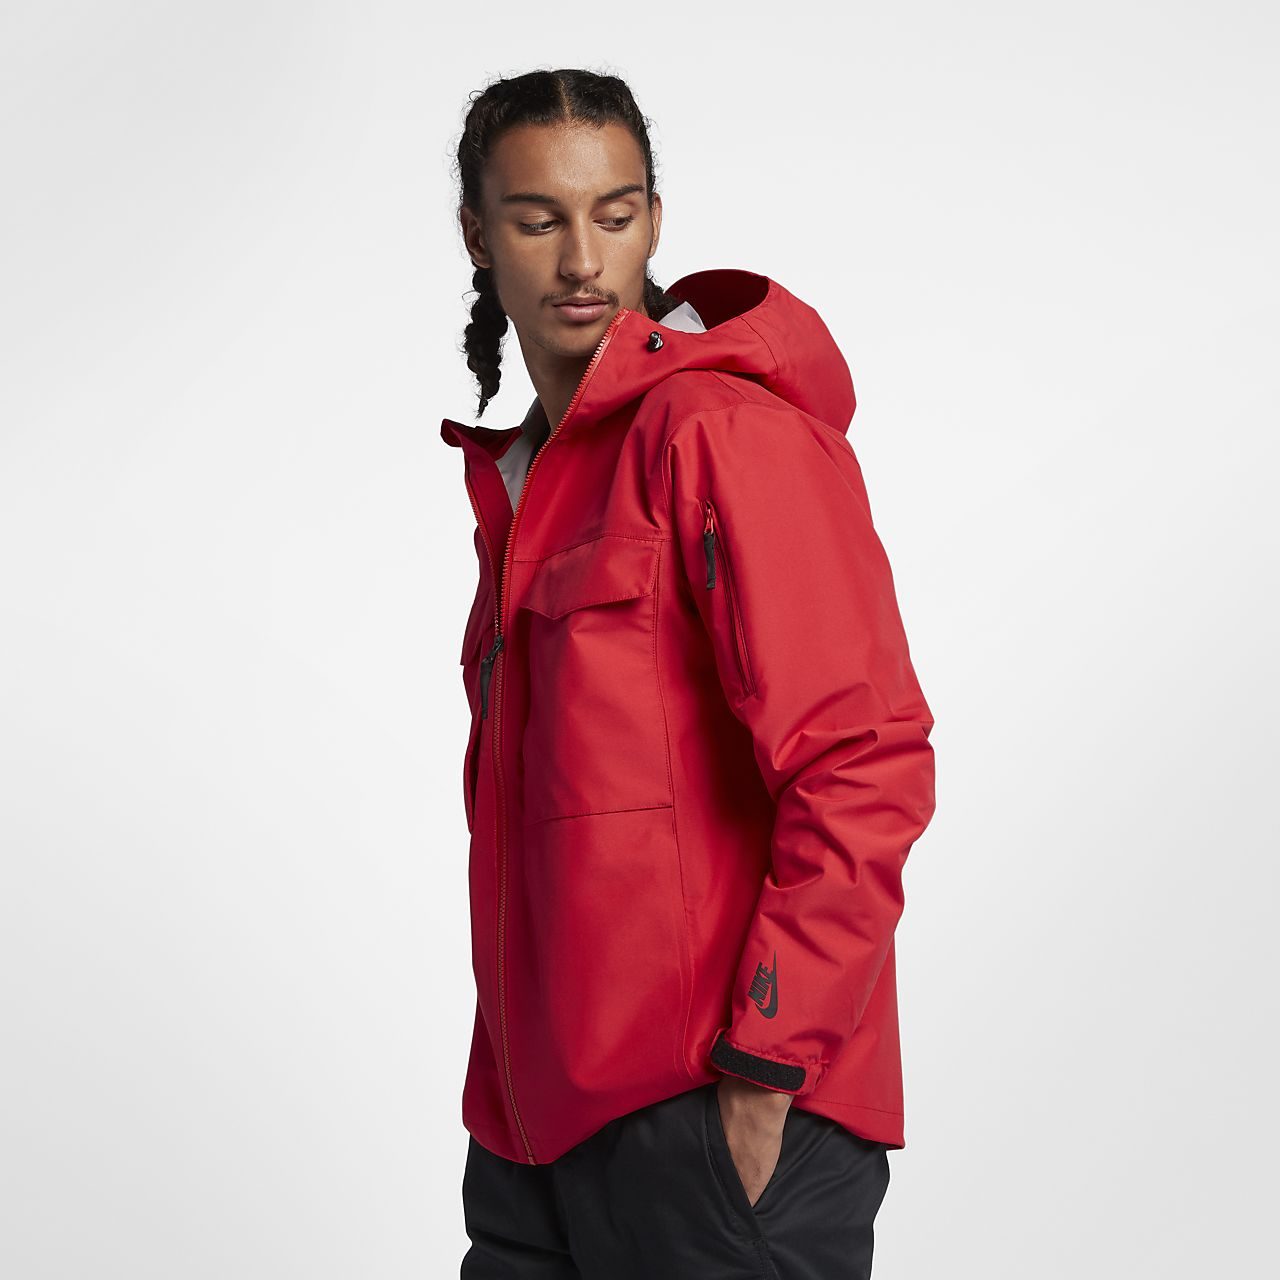 fa8c19a9d8 NikeLab Collection Wet Reveal Men's Jacket